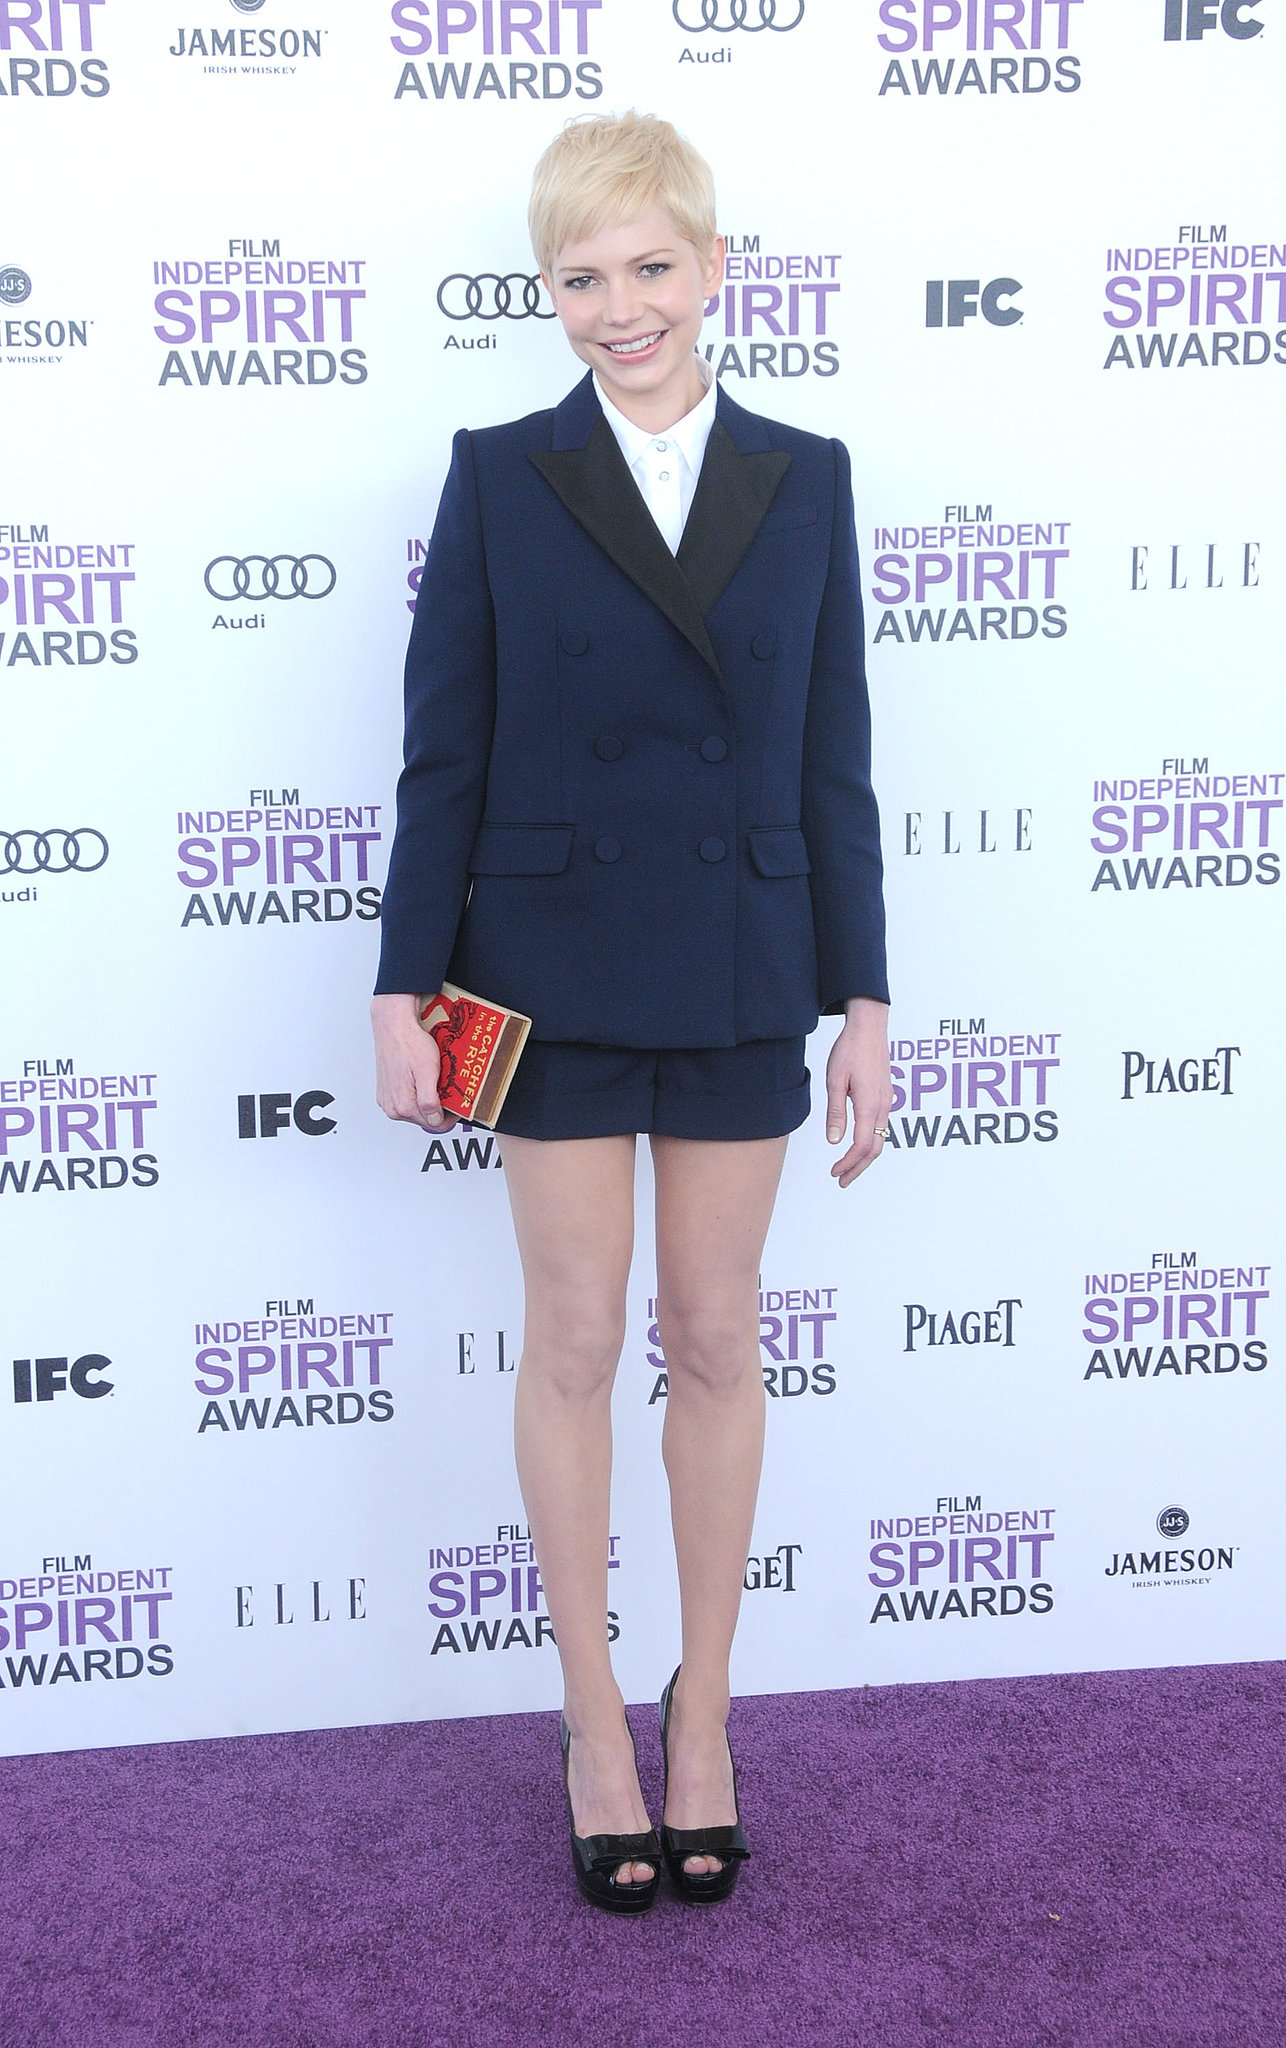 Michelle Williams wore an adorable outfit at the 2012 Film Independent Spirit Awards in LA.